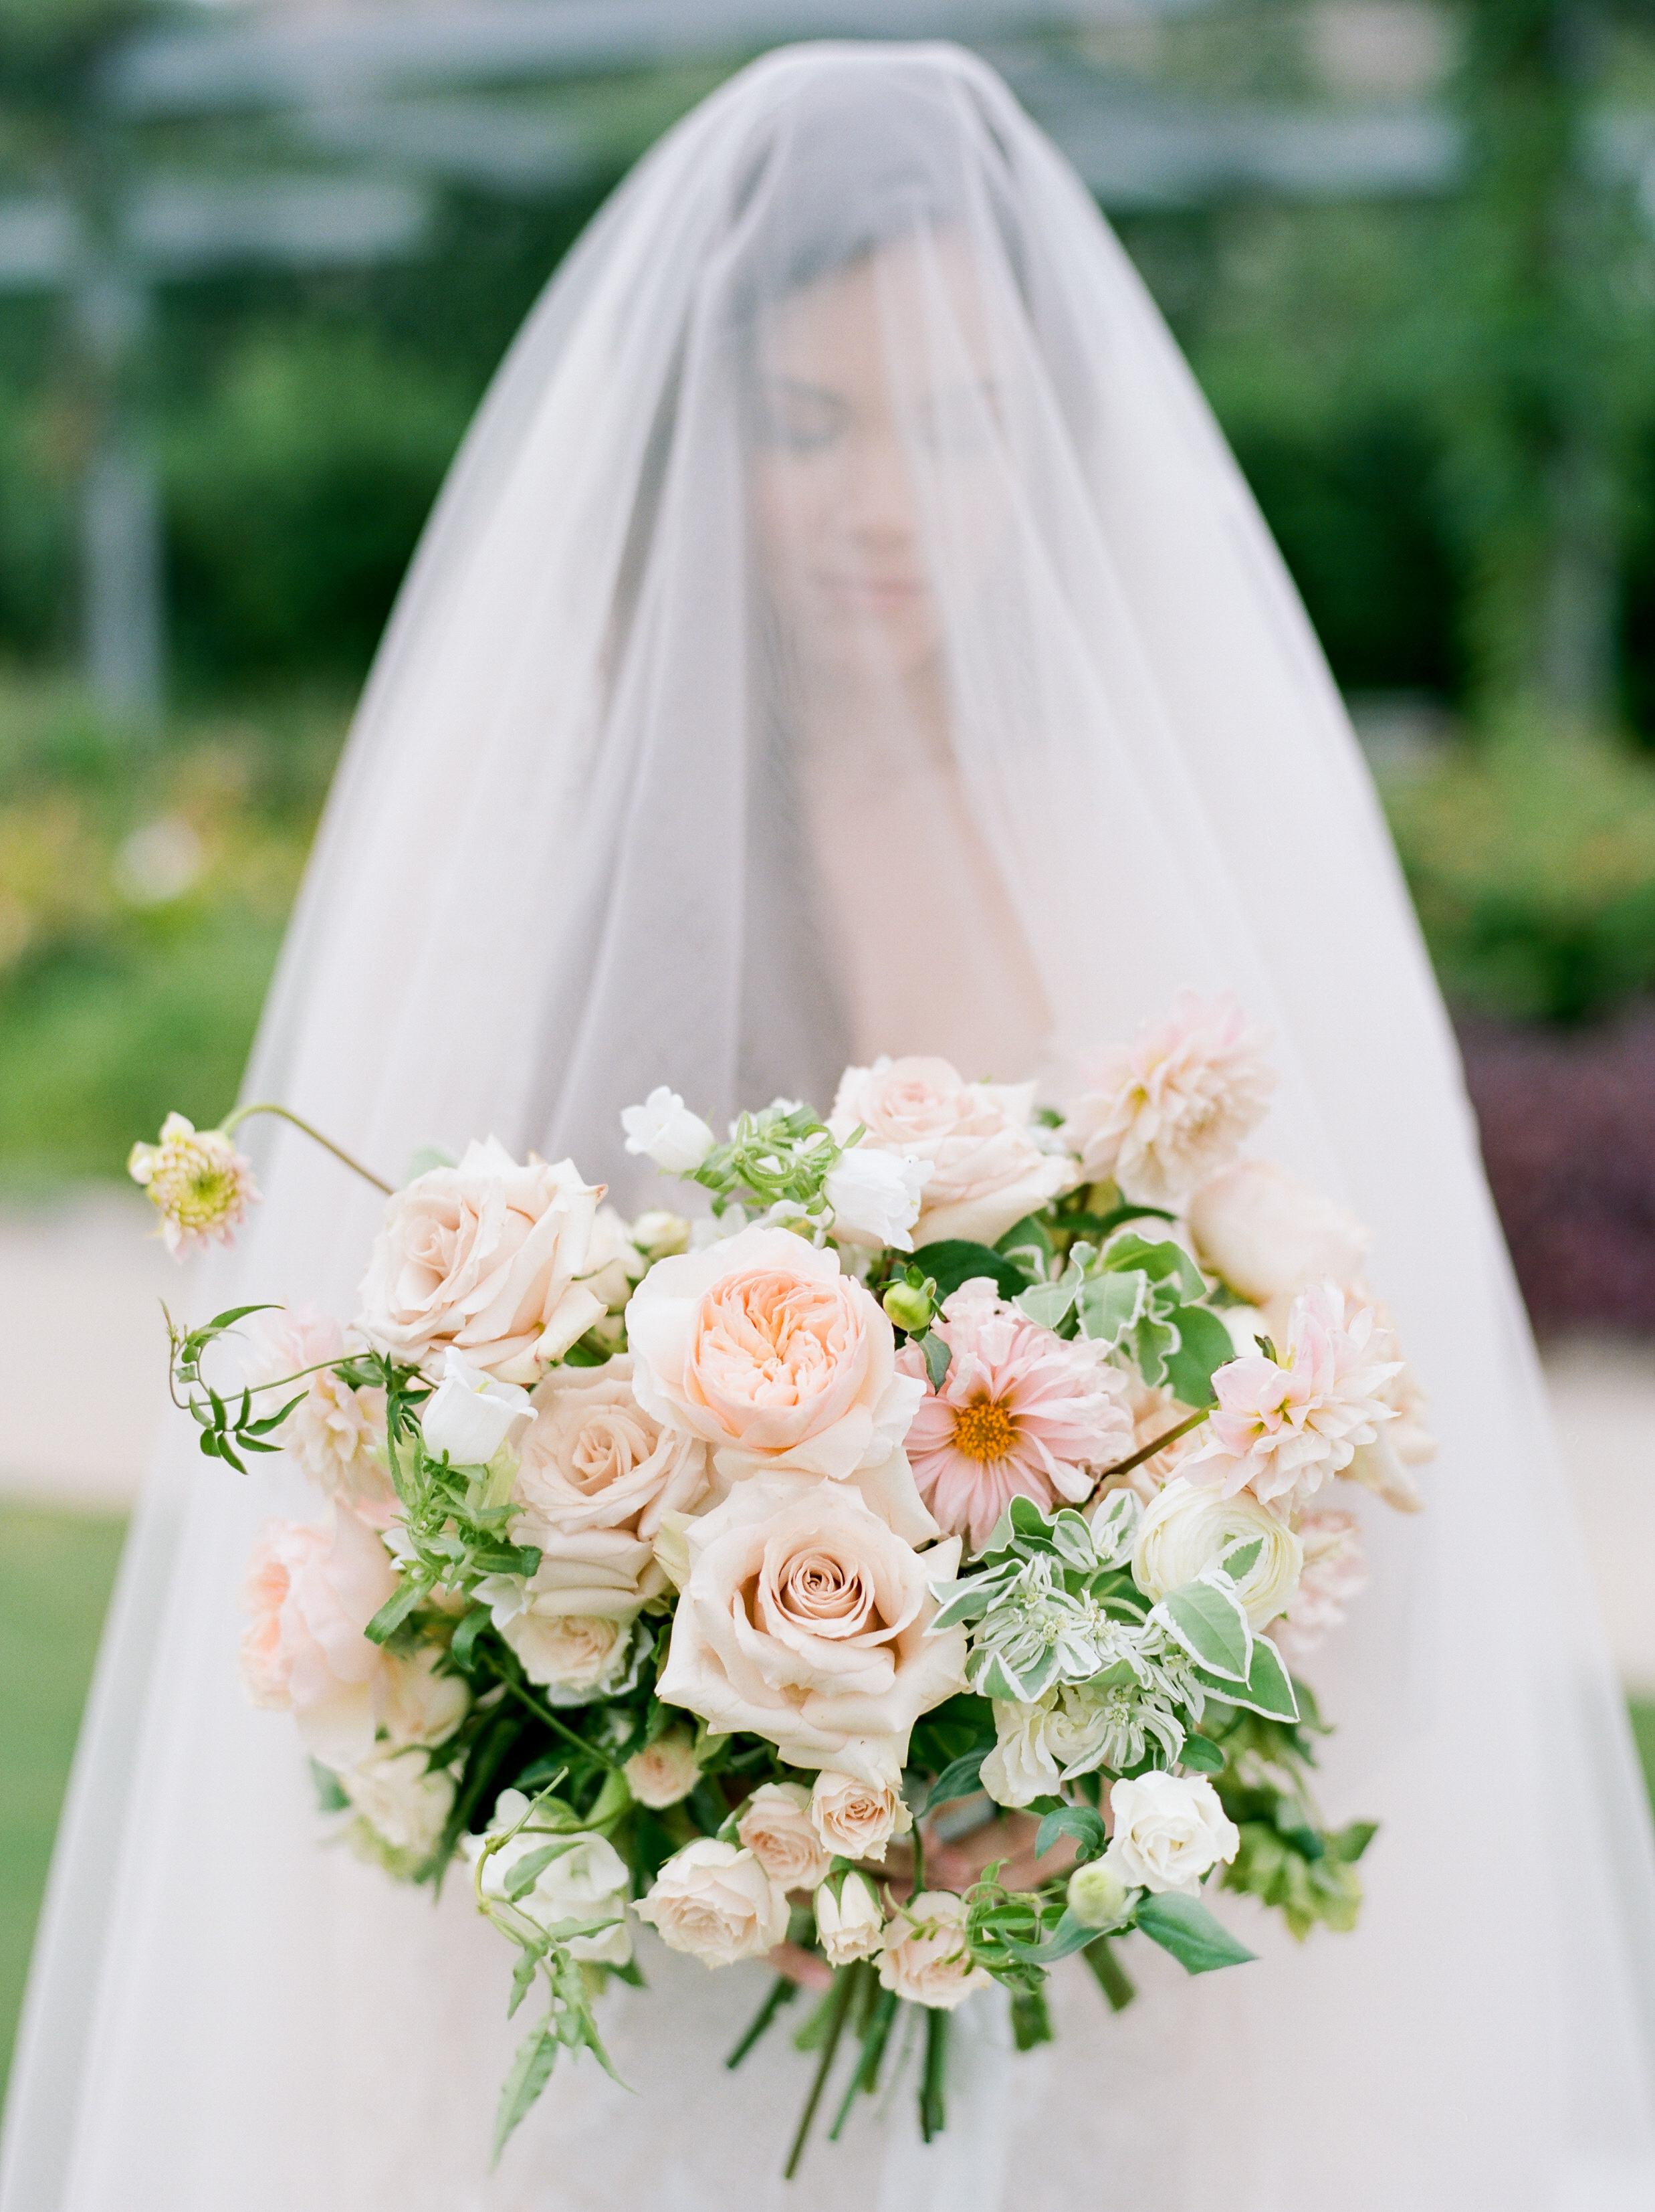 Fine-Art-Film-Houston-Wedding-Photographer-Best-Top-Luxury-Texas-Austin-Dallas-Destination-Dana-Fernandez-Photography-Portrait-Bridals-McGovern-Centennial-Gardens-2.jpg